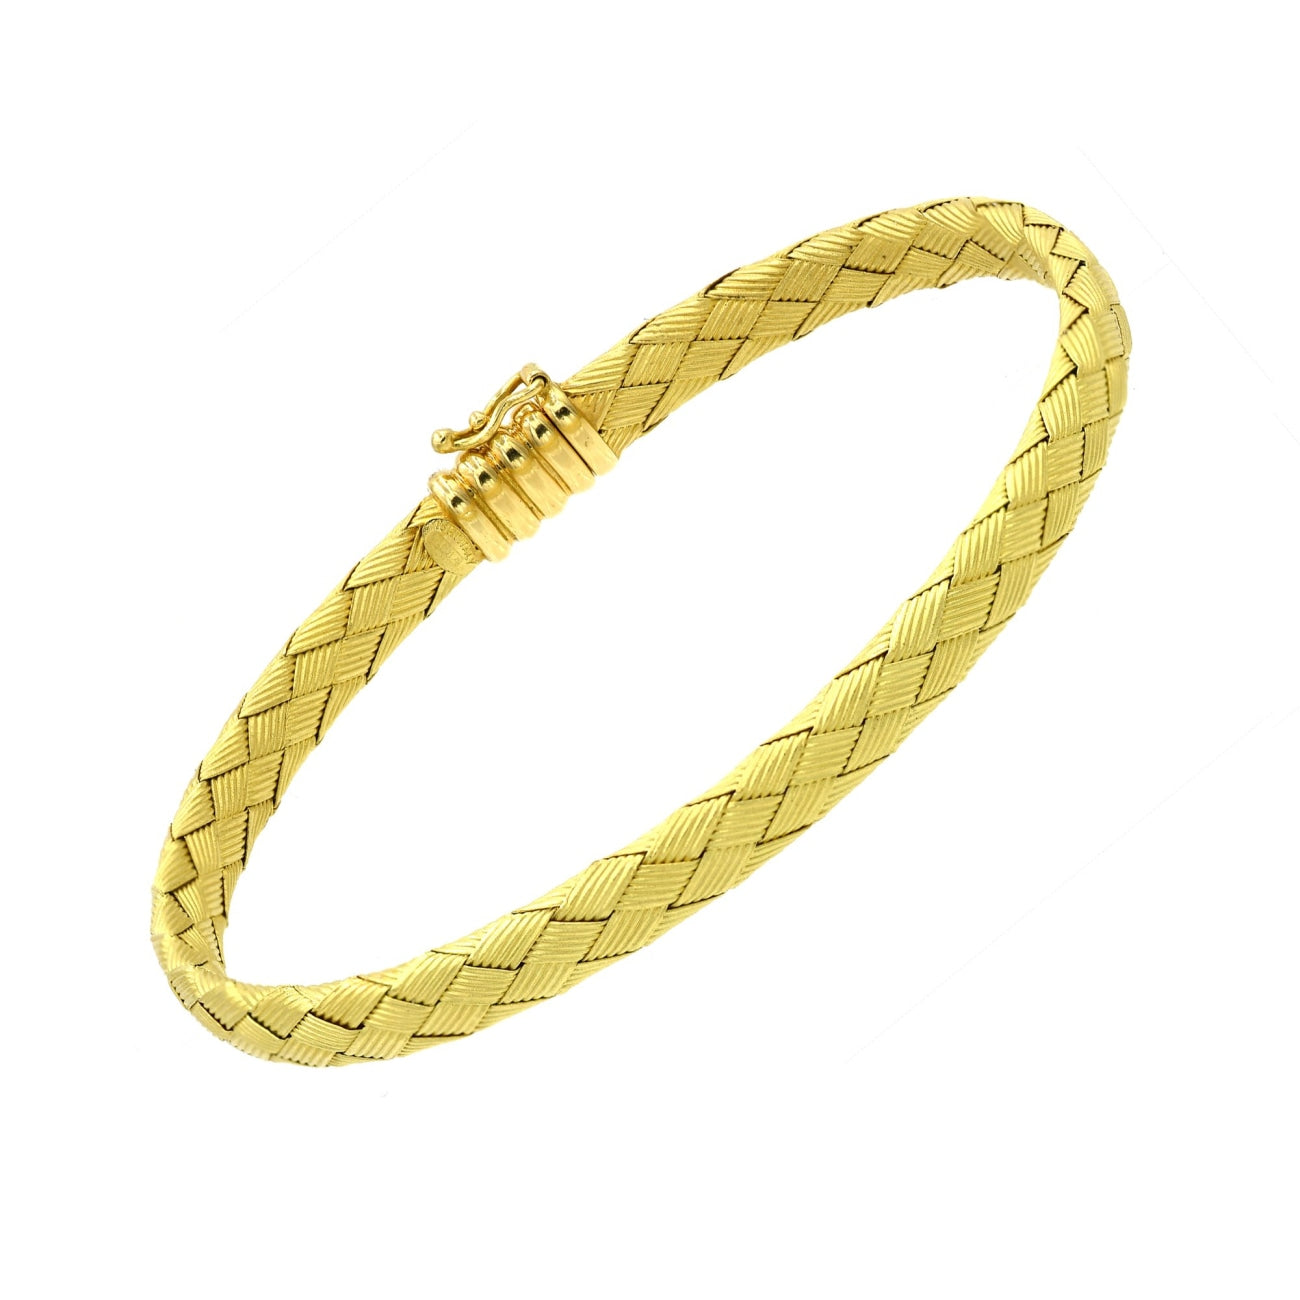 VERGANO Jewelry - Vergano Italian 18k Yellow Gold Basket Weave Flexible Bangle | Manfredi Jewels